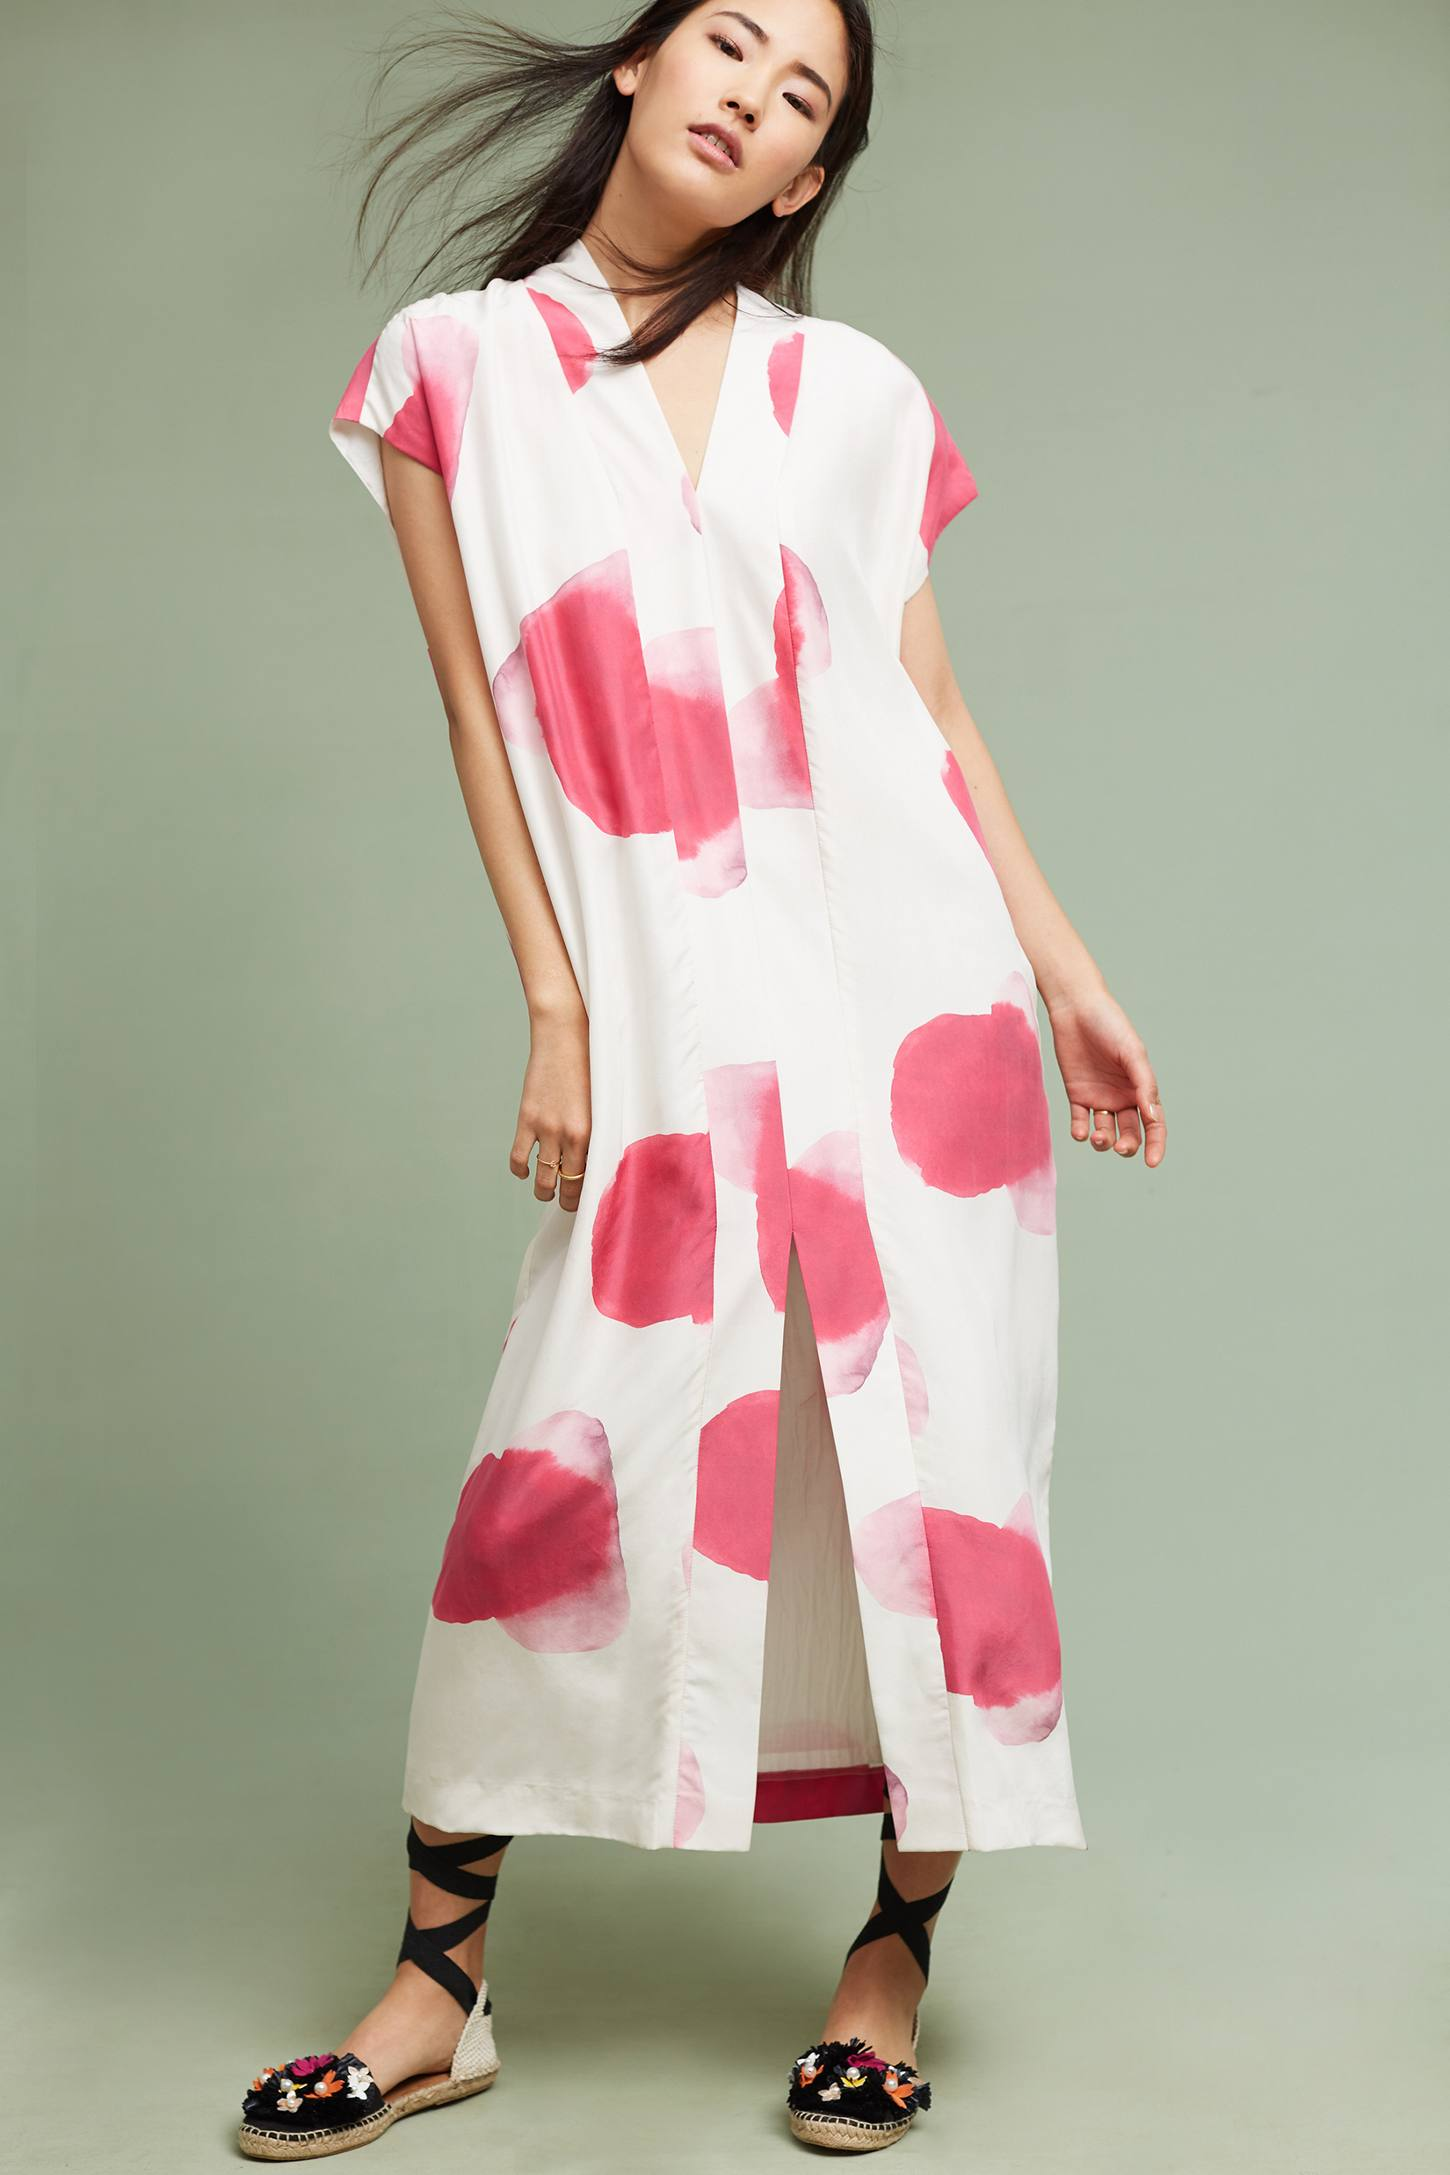 Slide View: 1: Sunspot Silk Dress